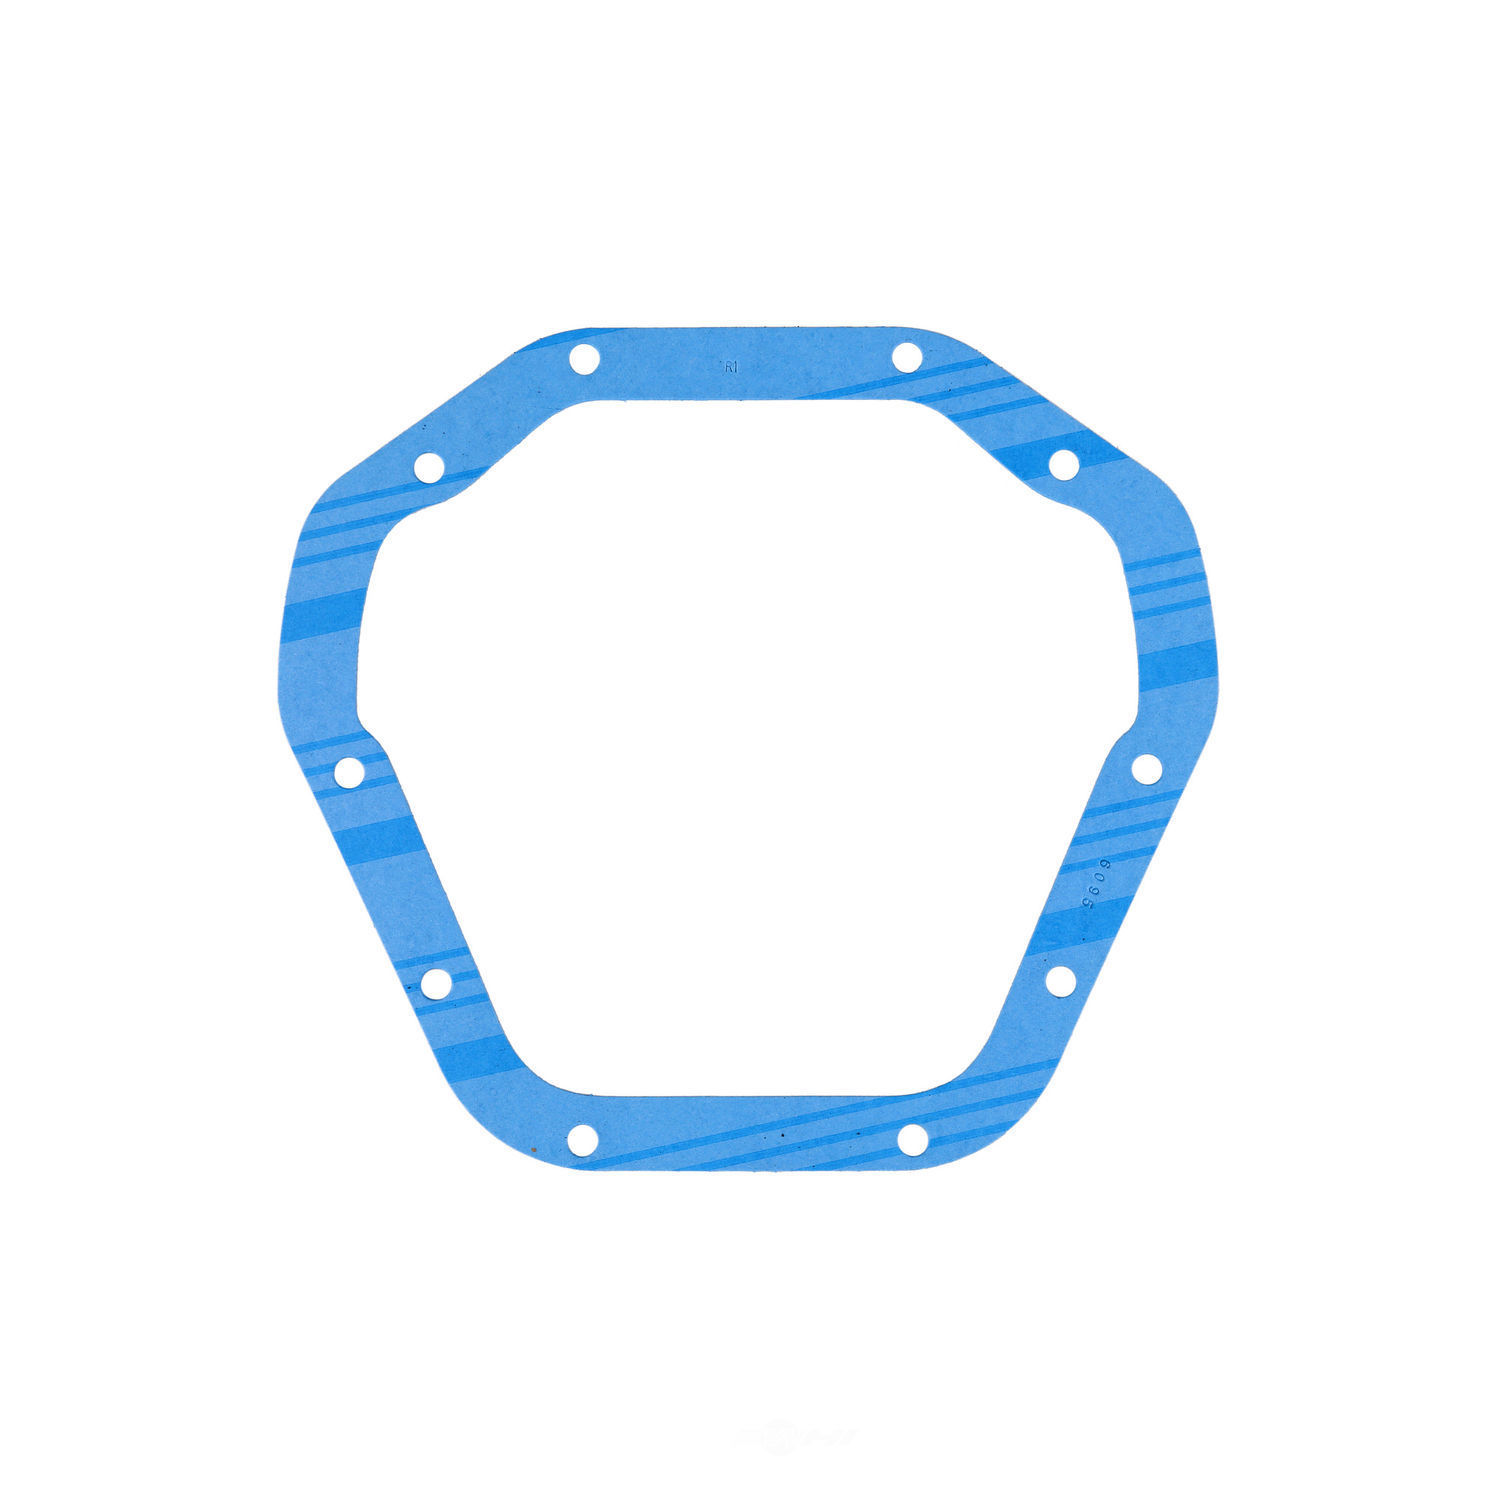 FELPRO - Axle Housing Cover Gasket (Front) - FEL RDS 6095-1